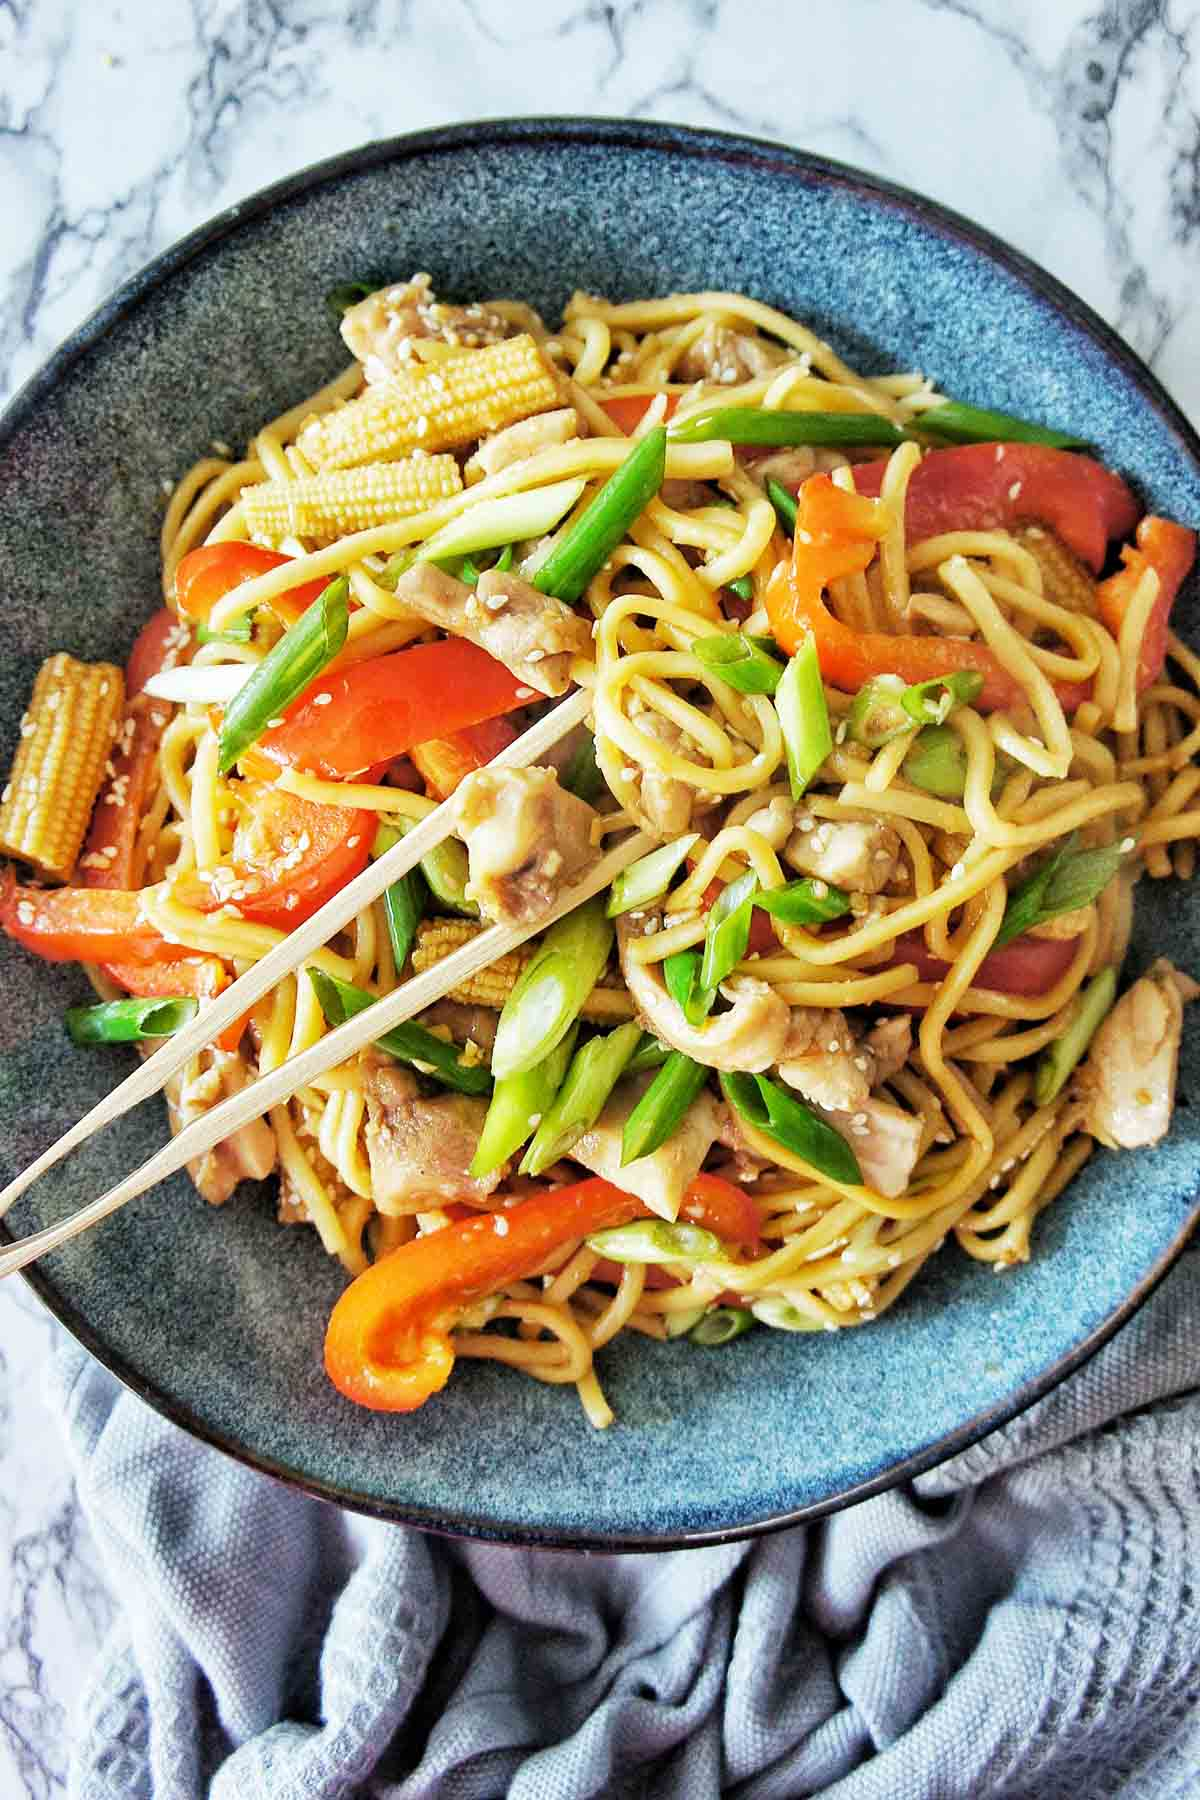 Chicken Noodle Stir Fri in a blue bowl with wooden tongs